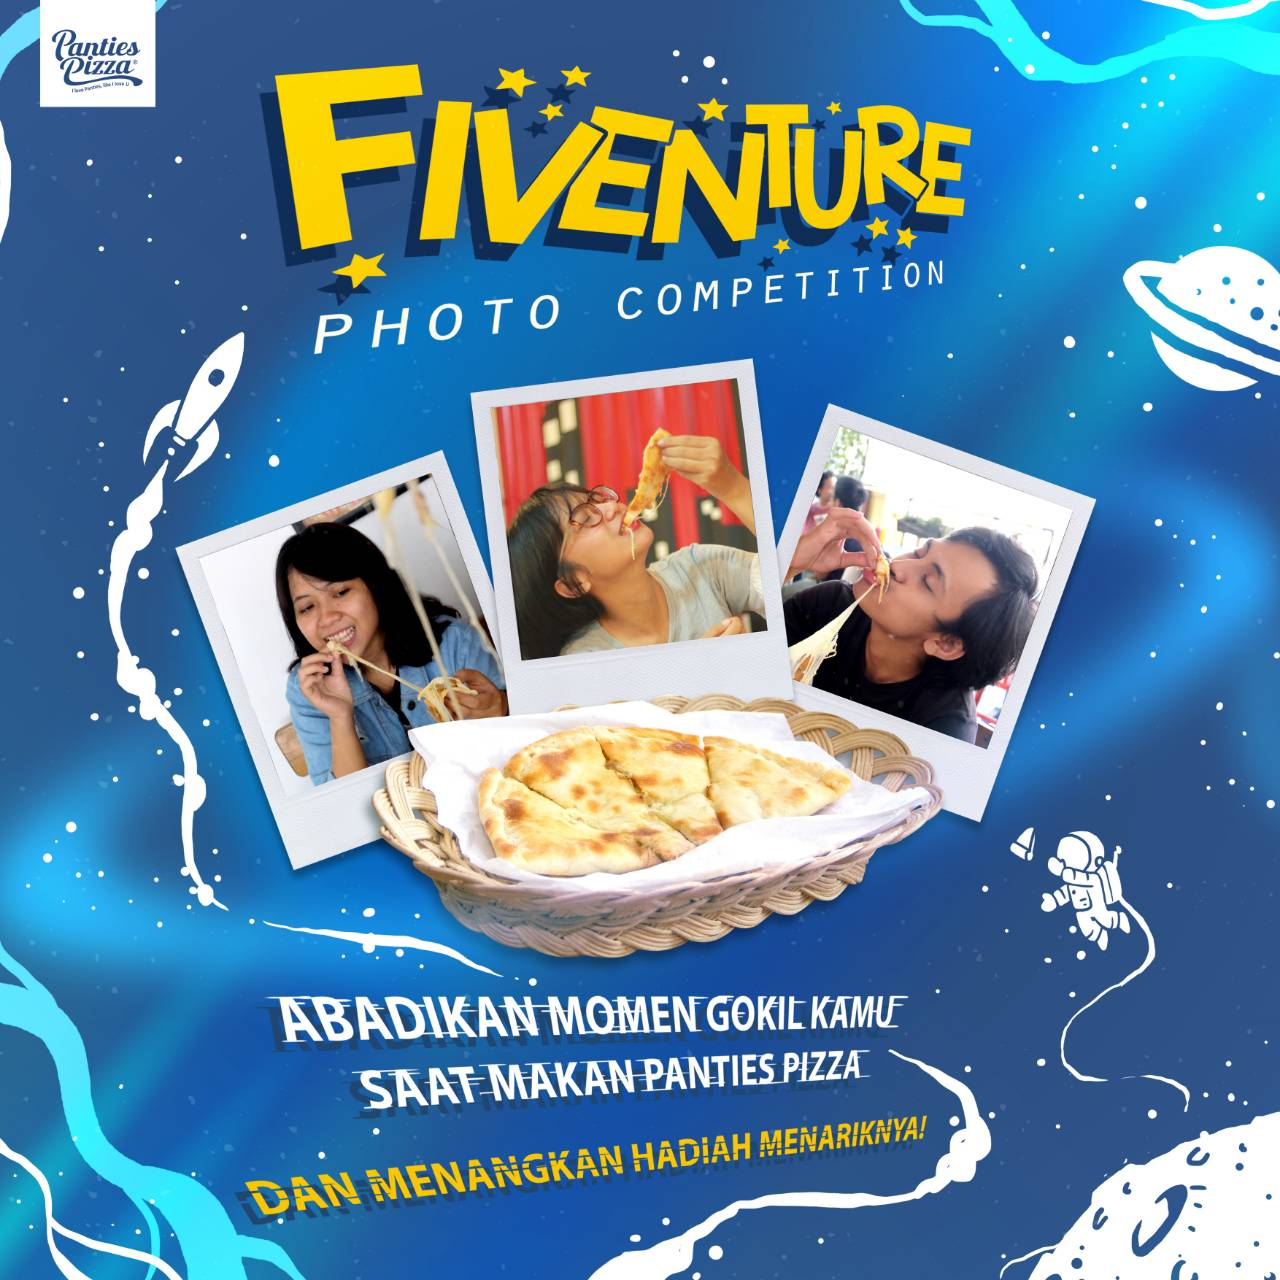 Fiveture Photo Competition Anniversary Panties Pizza Indonesia 5th